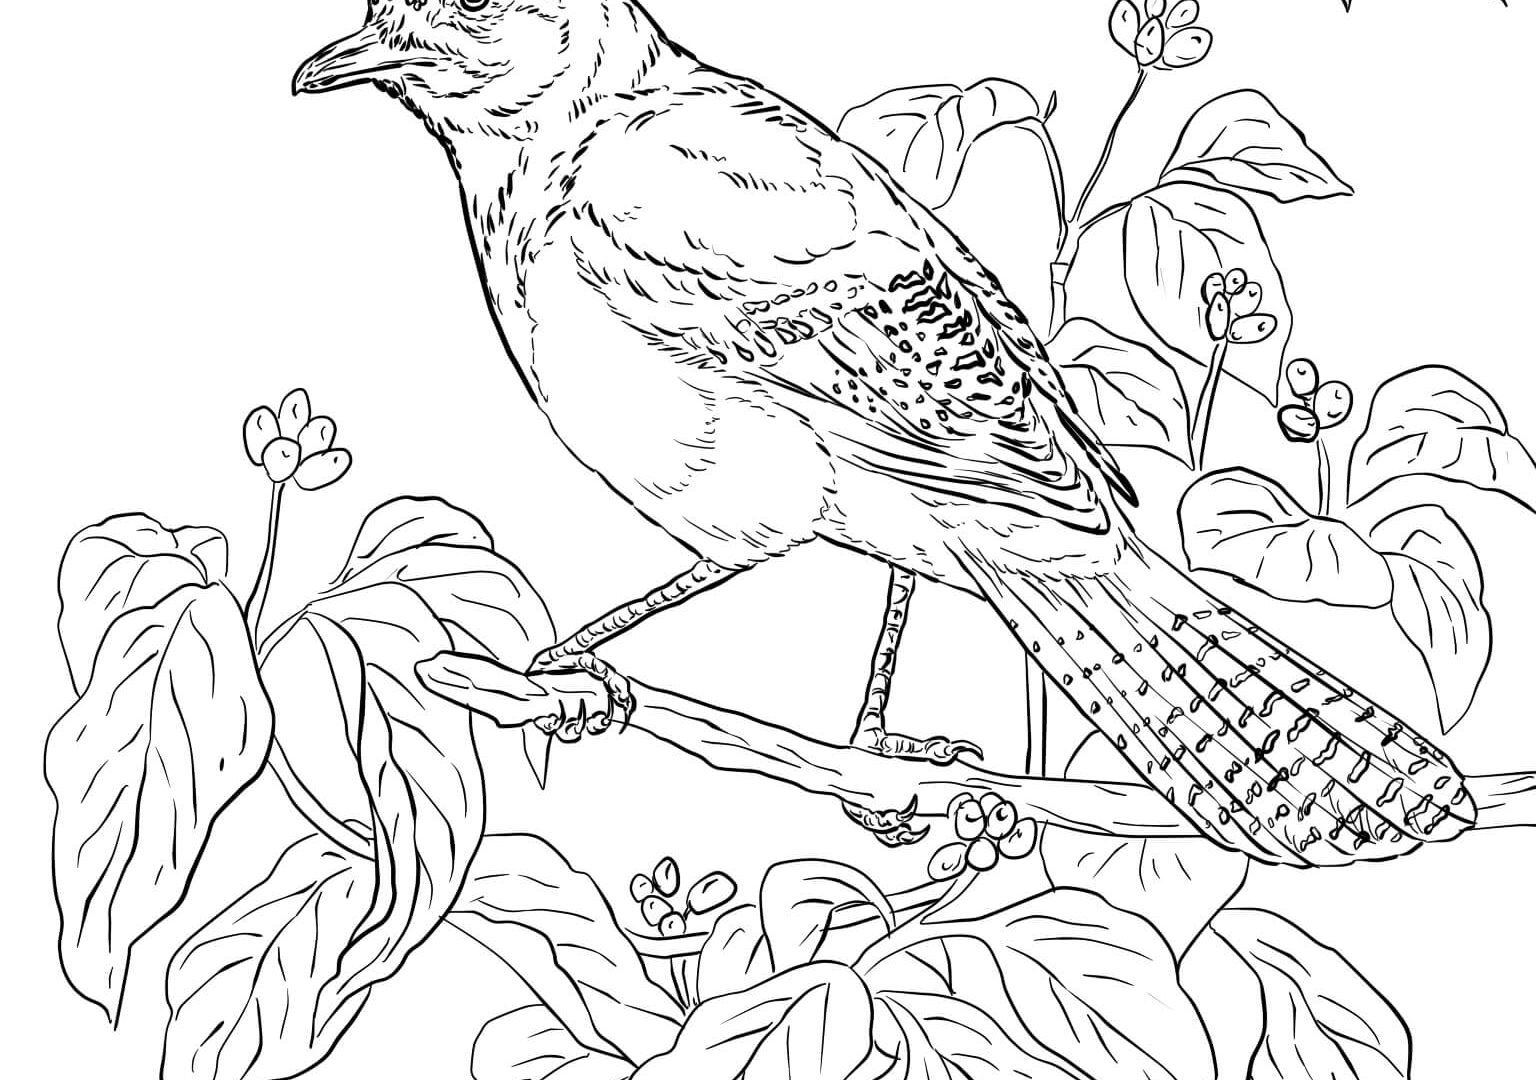 toronto blue jays coloring pages toronto blue jays coloring pages at getdrawings free pages jays coloring blue toronto